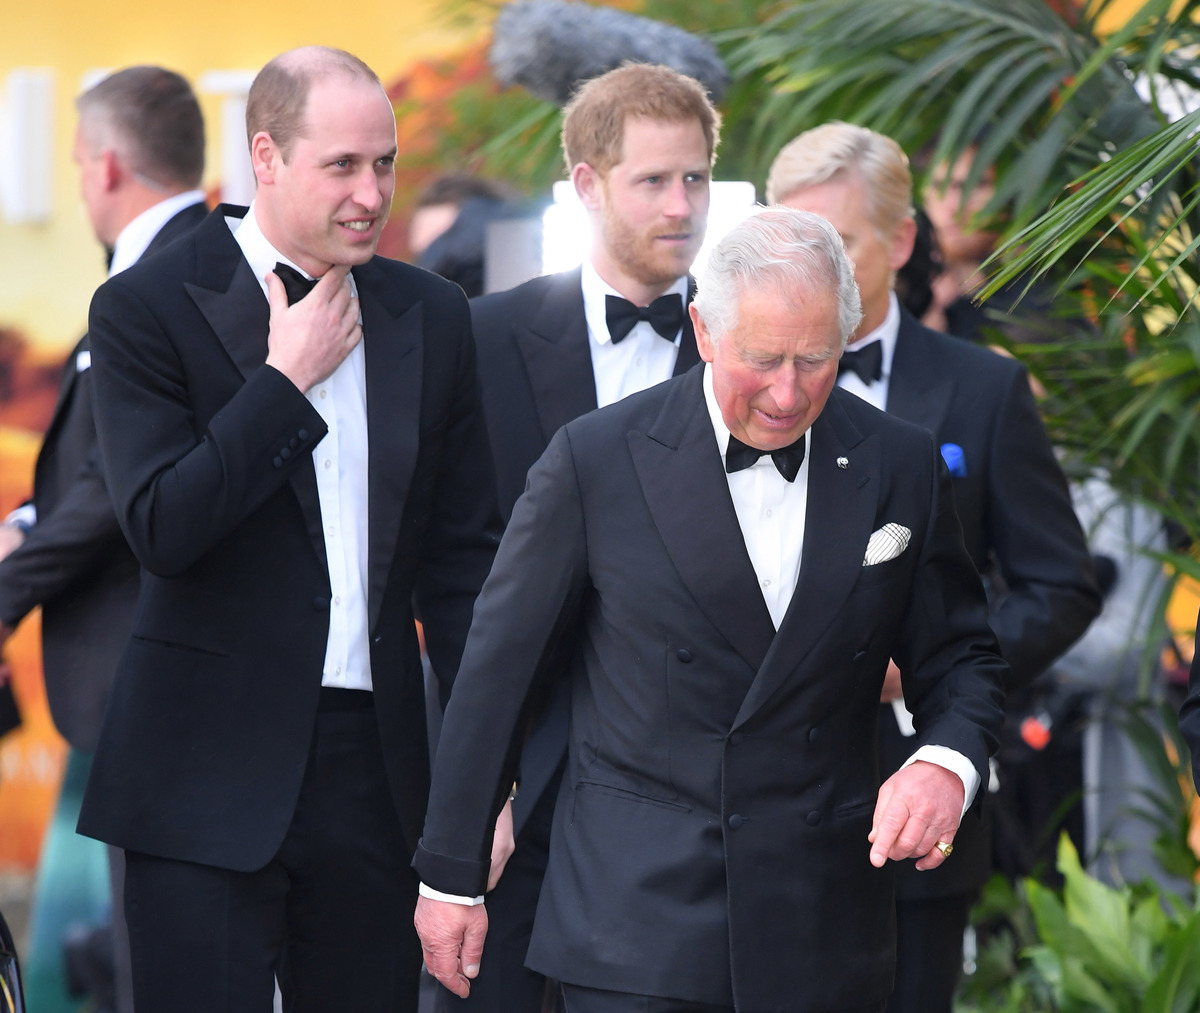 Prince William, Duke of Cambridge, Prince Harry, Duke of Sussex and Prince Charles, Prince of Wales attend the